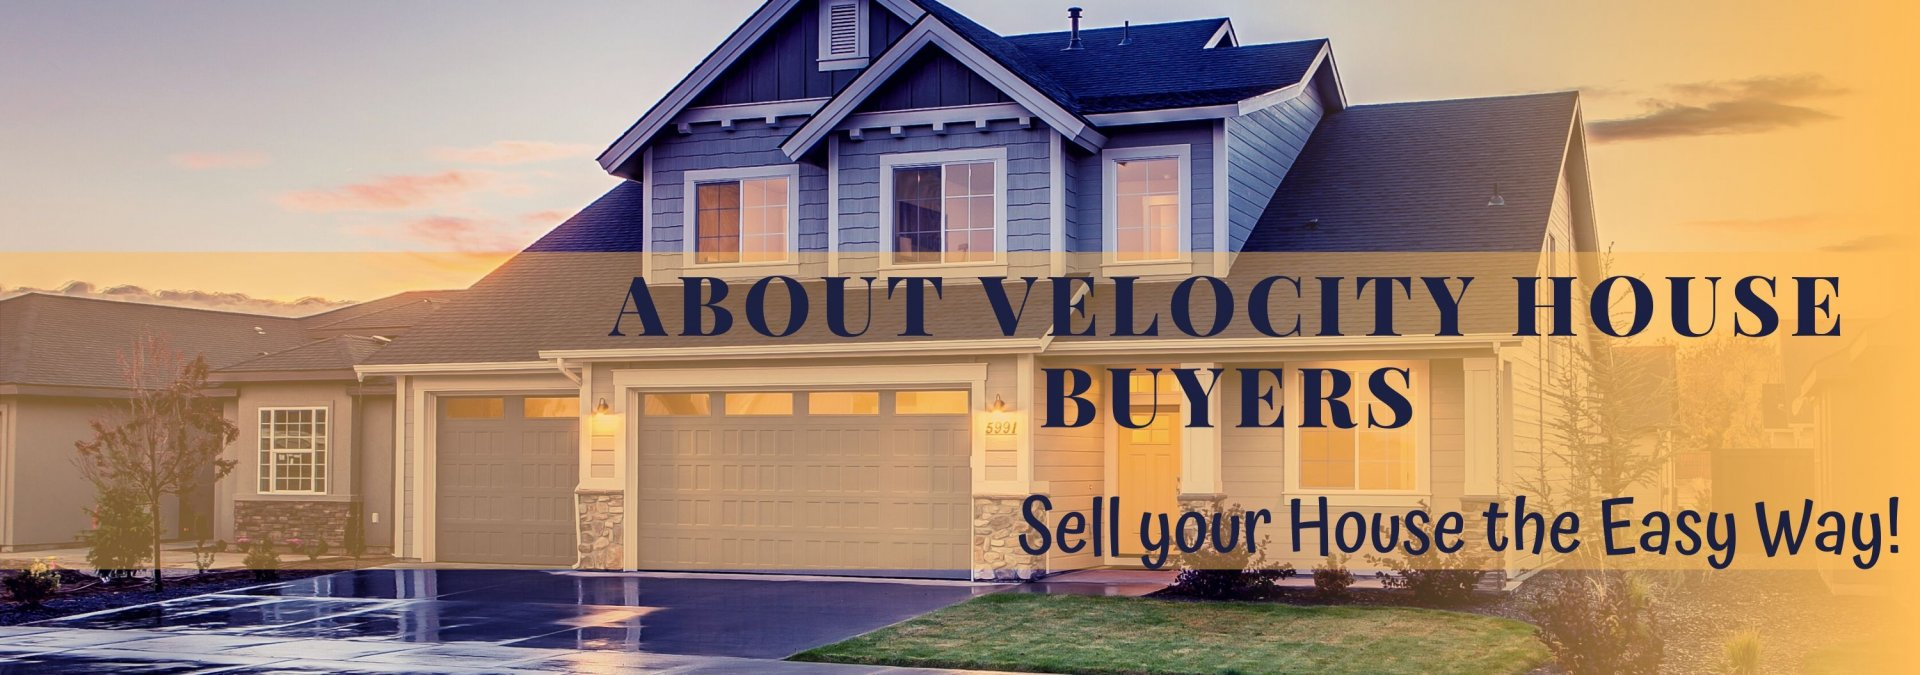 Velocity House Buyers